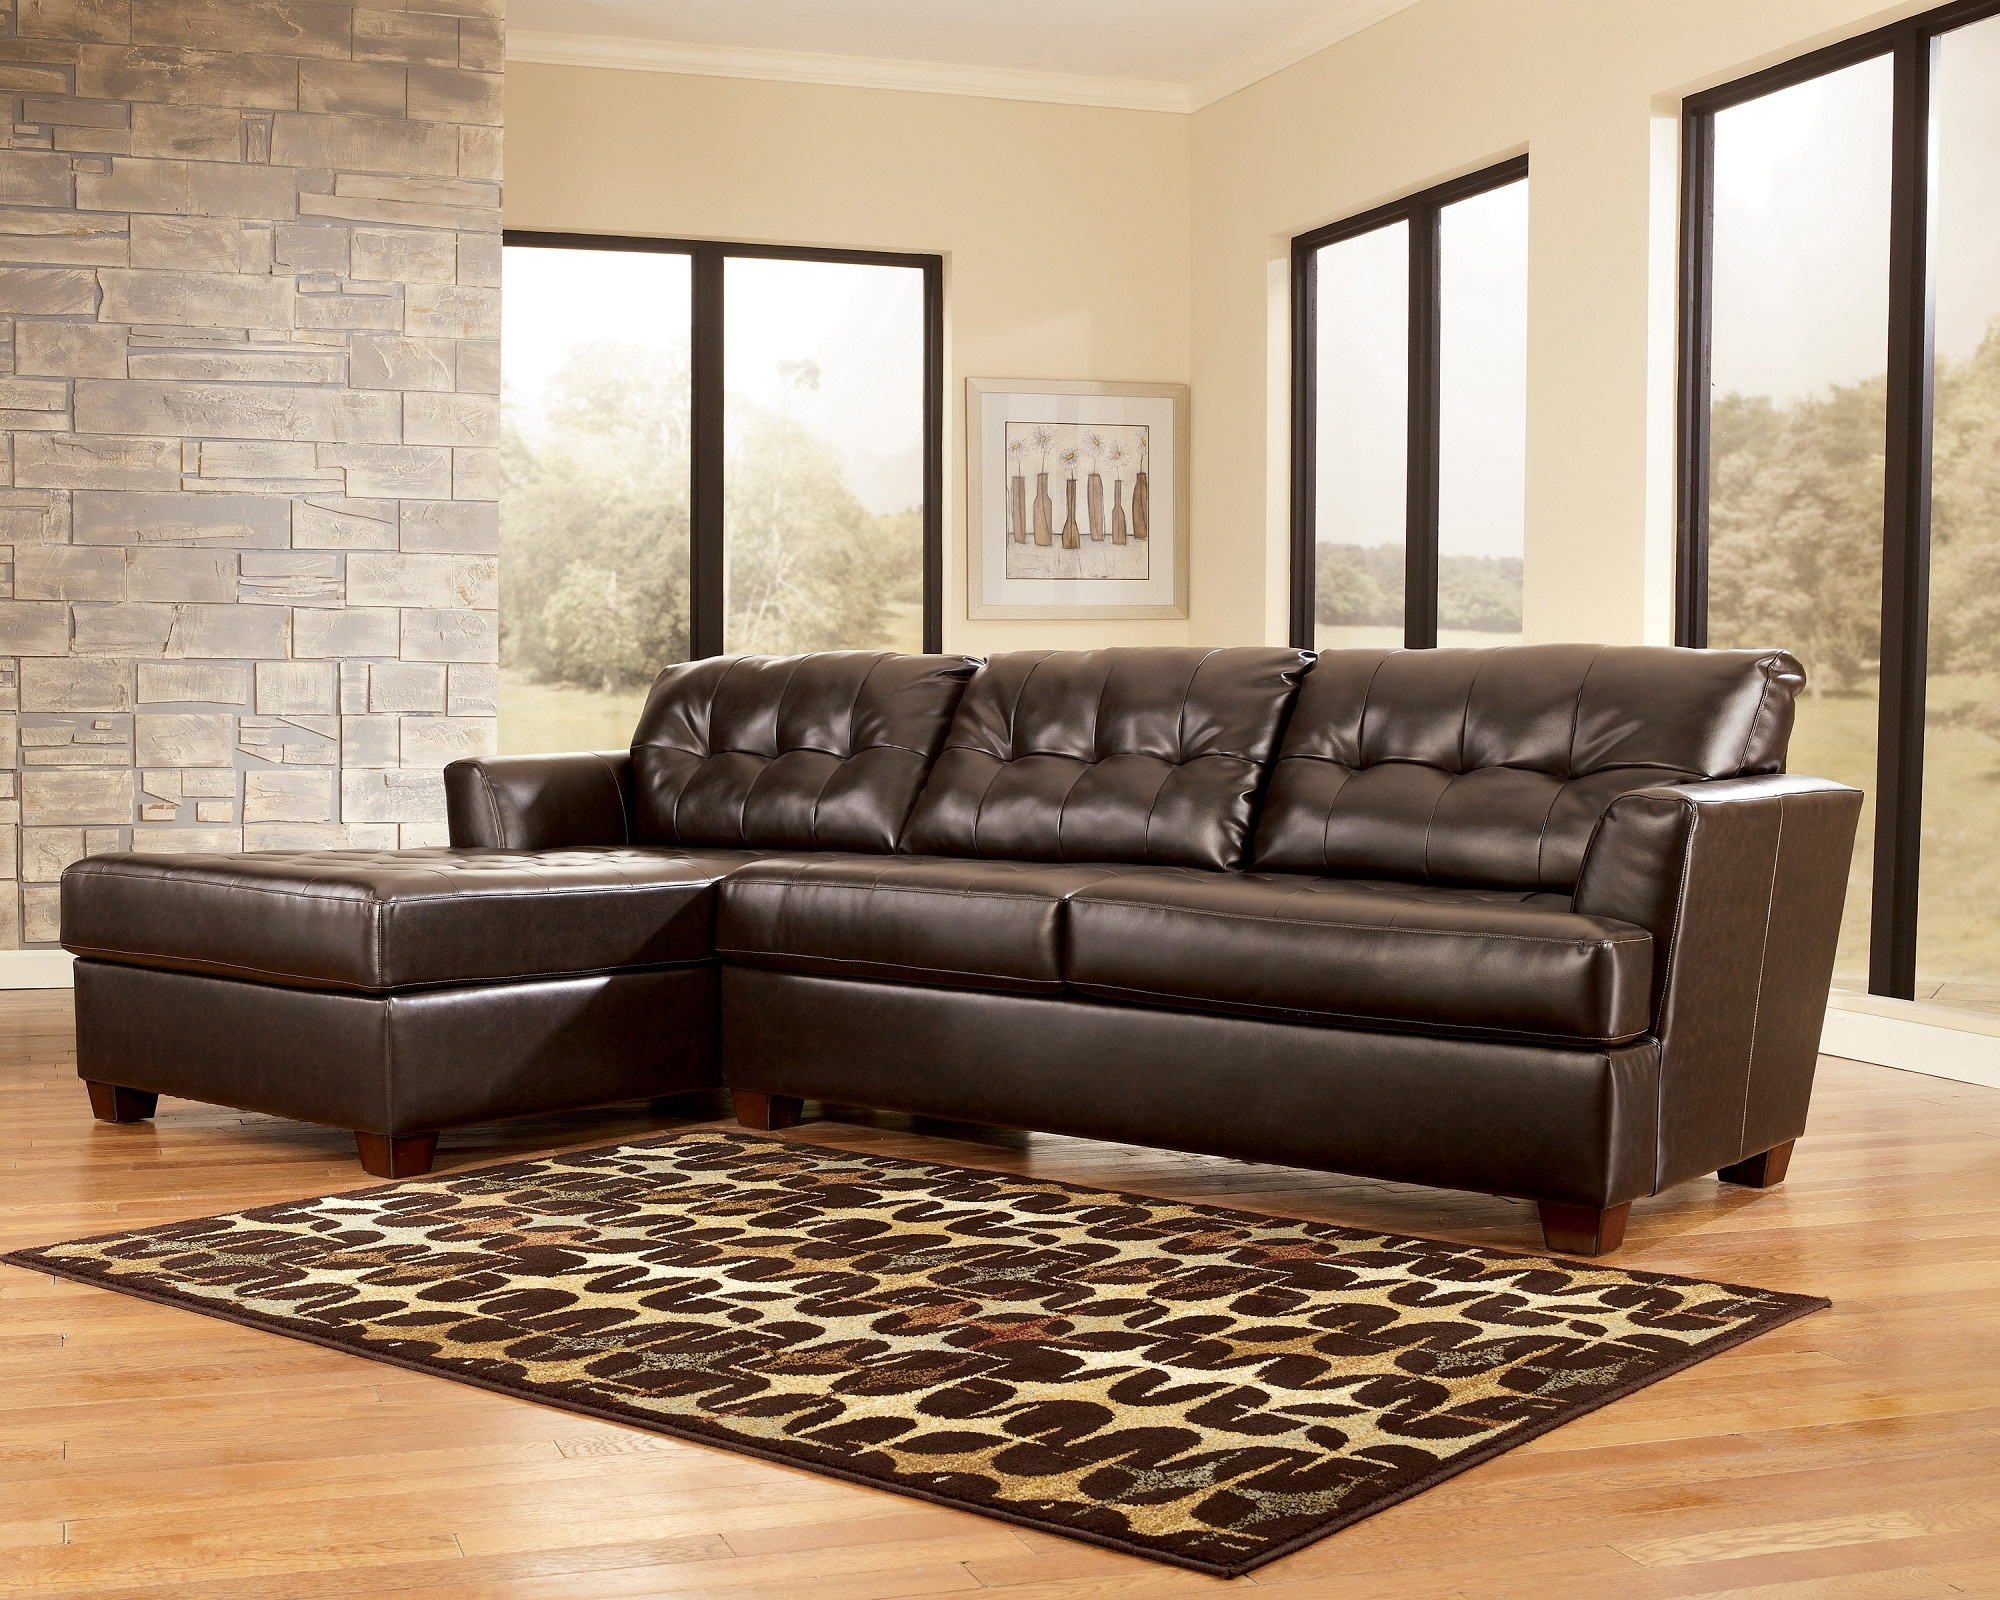 Inspiring leather sleeper sofa for furnishing our living for Dark brown sofa living room ideas